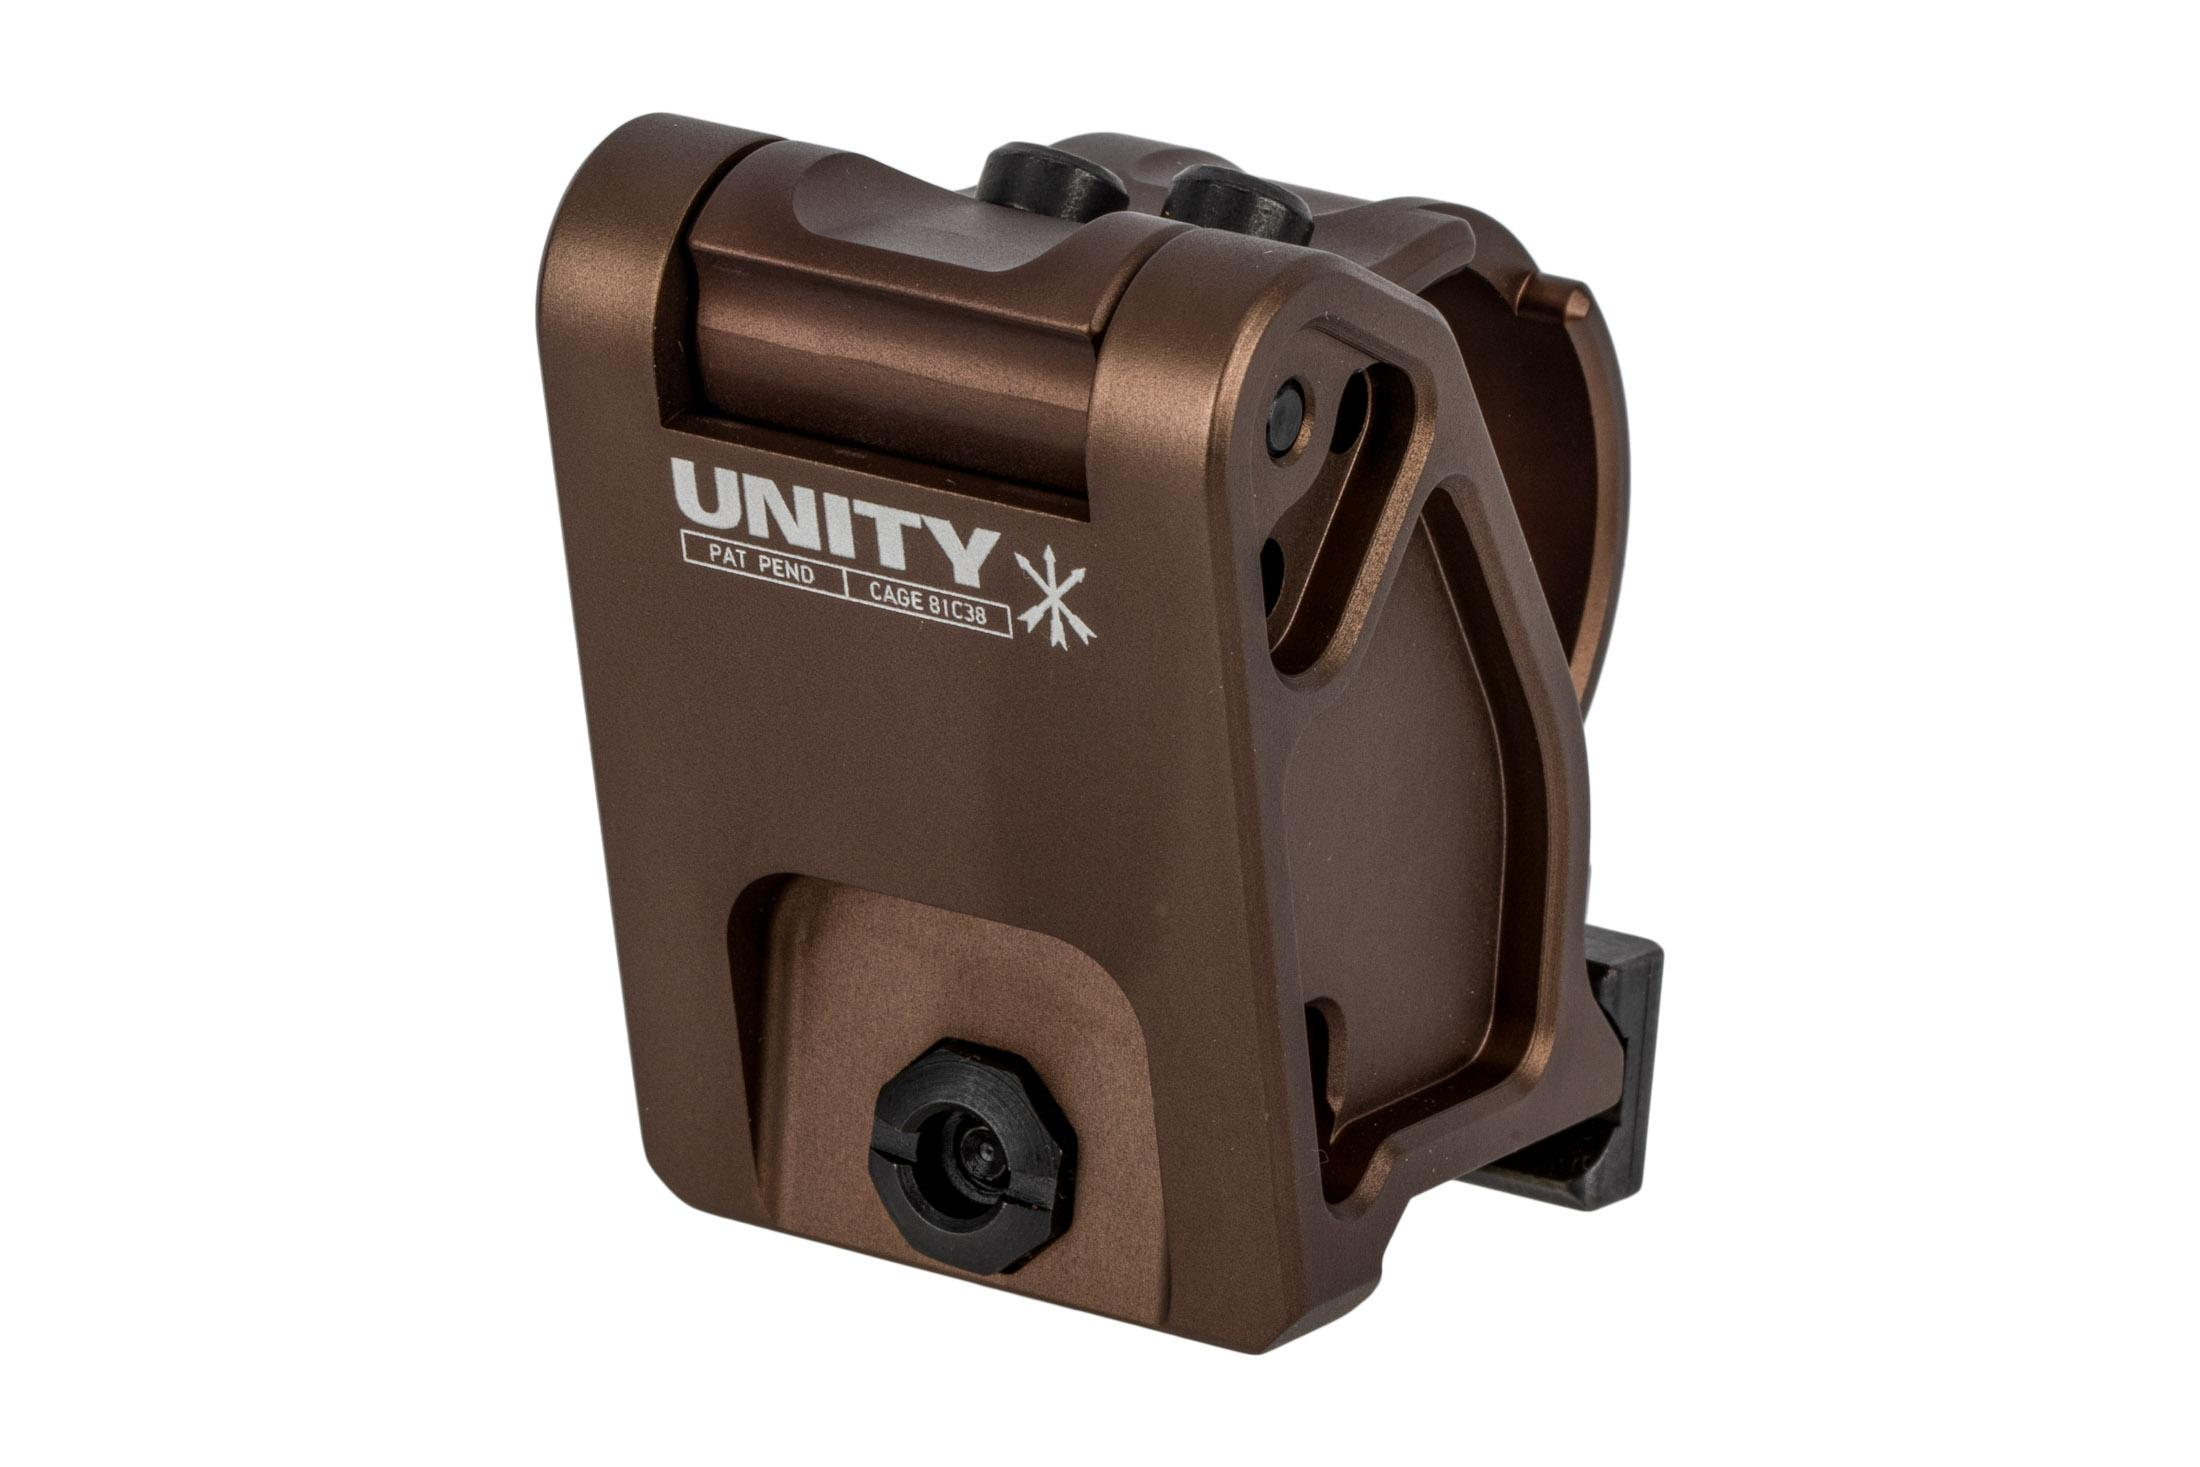 Unity Tactical 30mm magnifier mount FAST features an FDE anodized finish